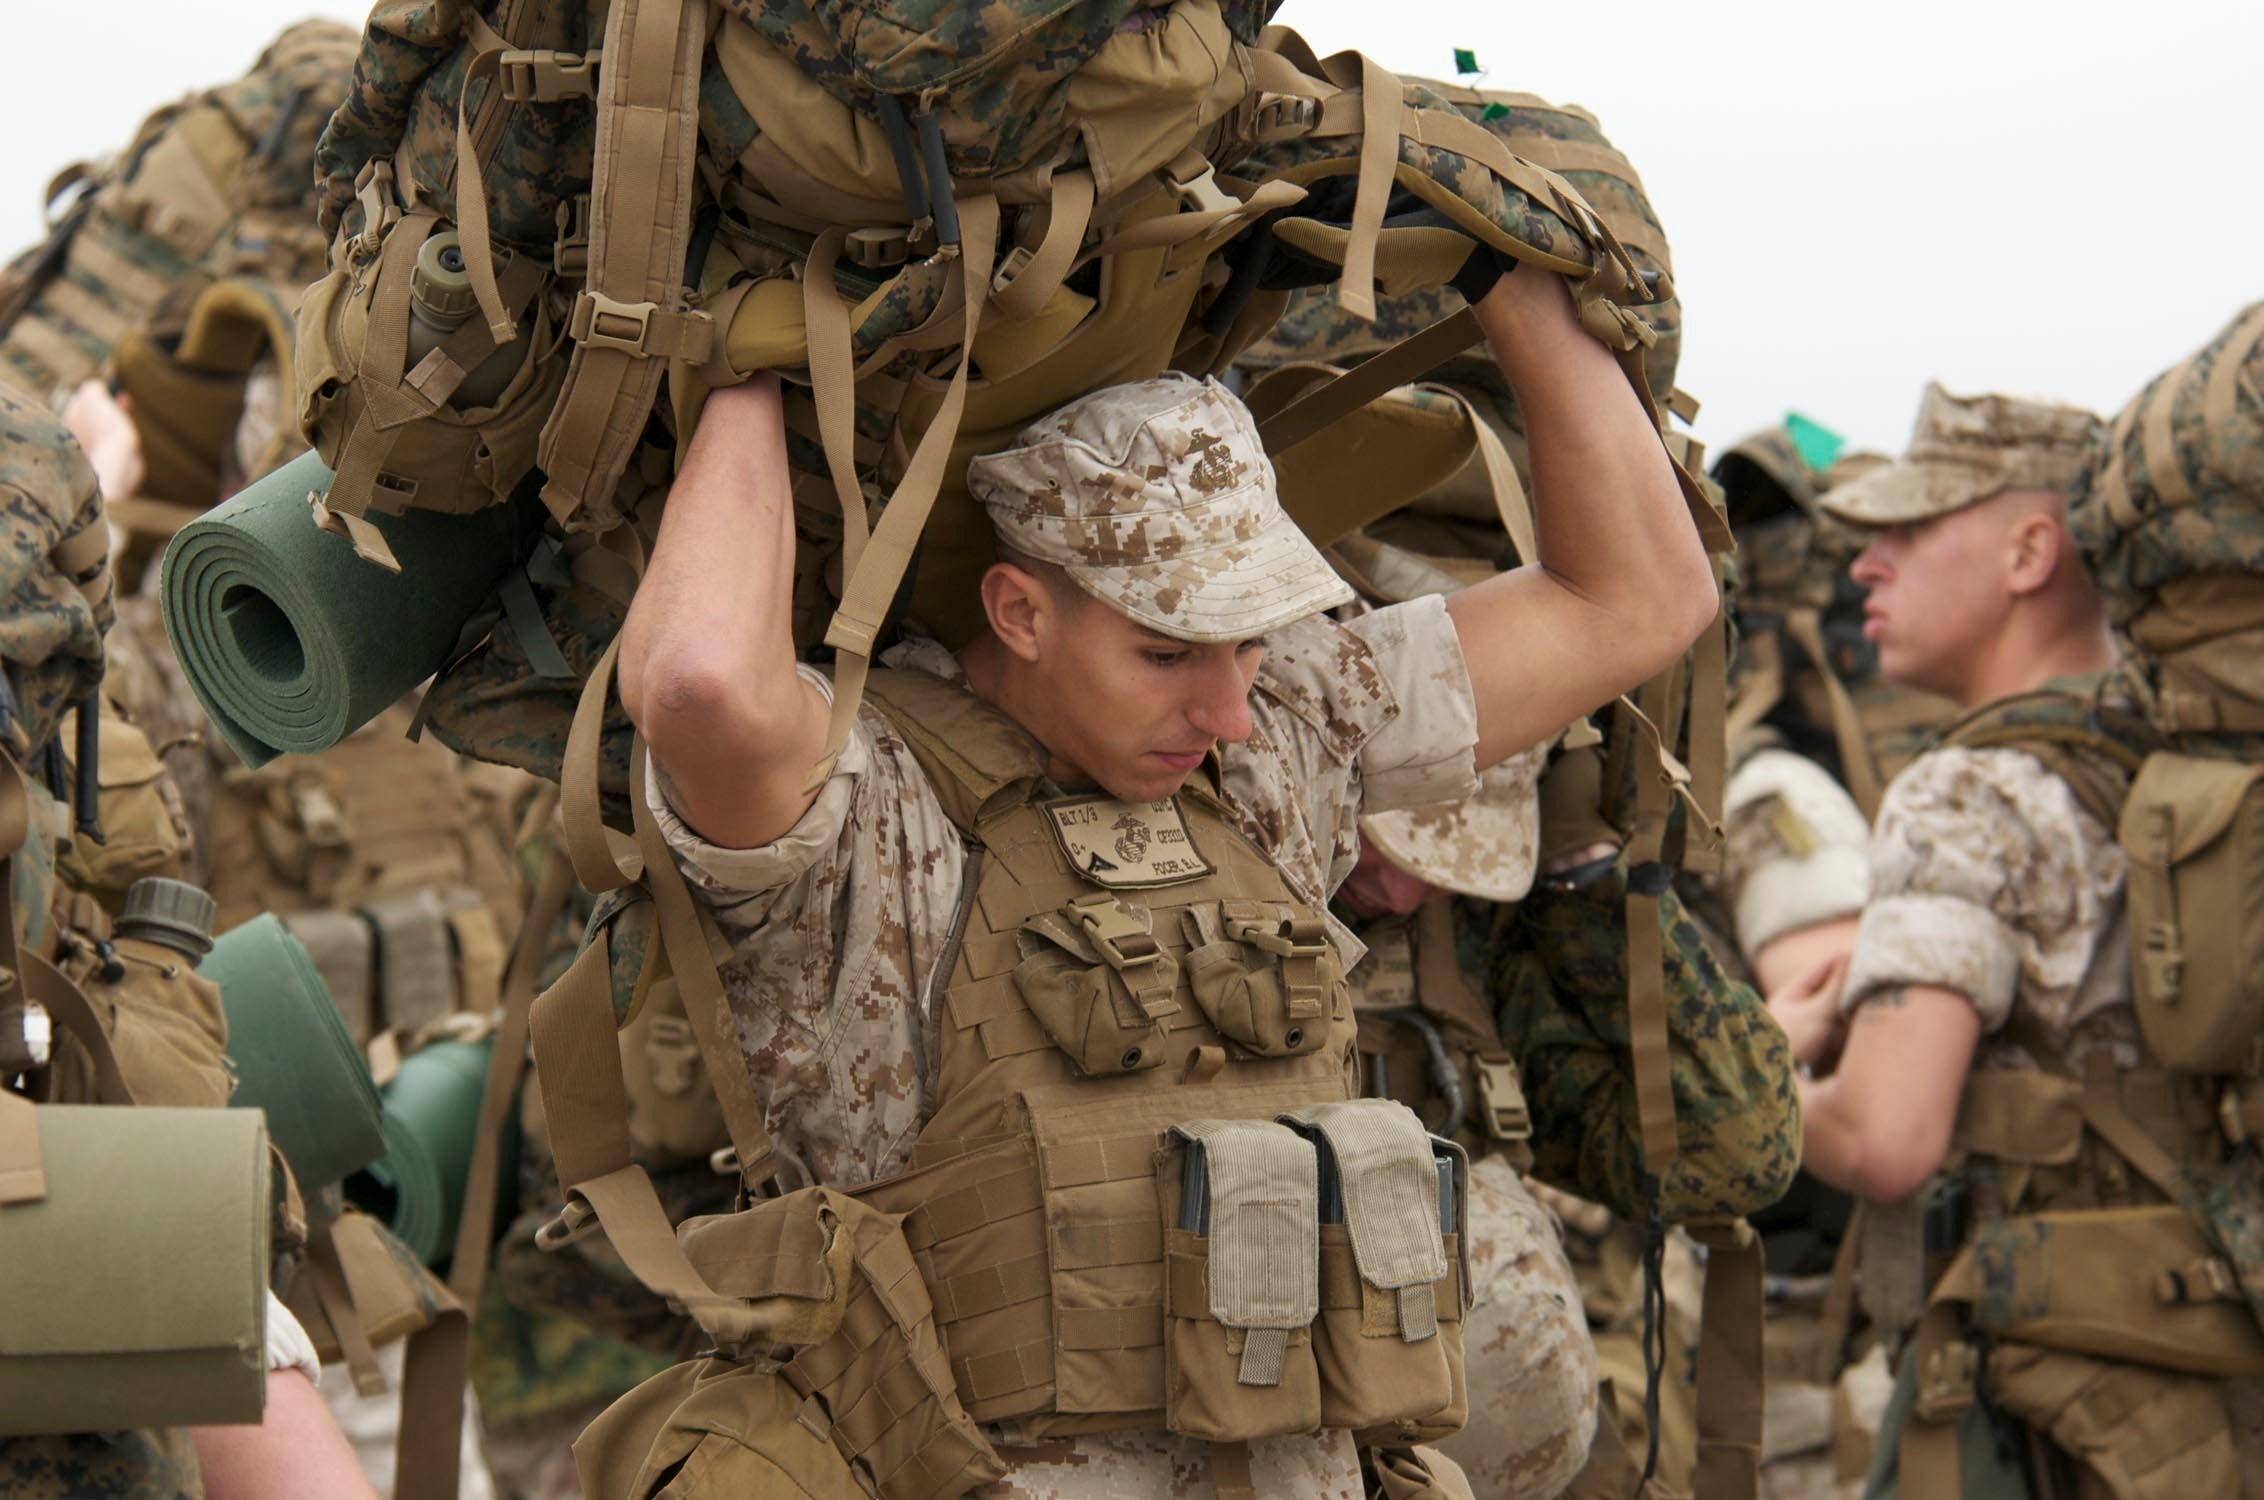 11 things a military buddy would do that a civilian BFF probably won't